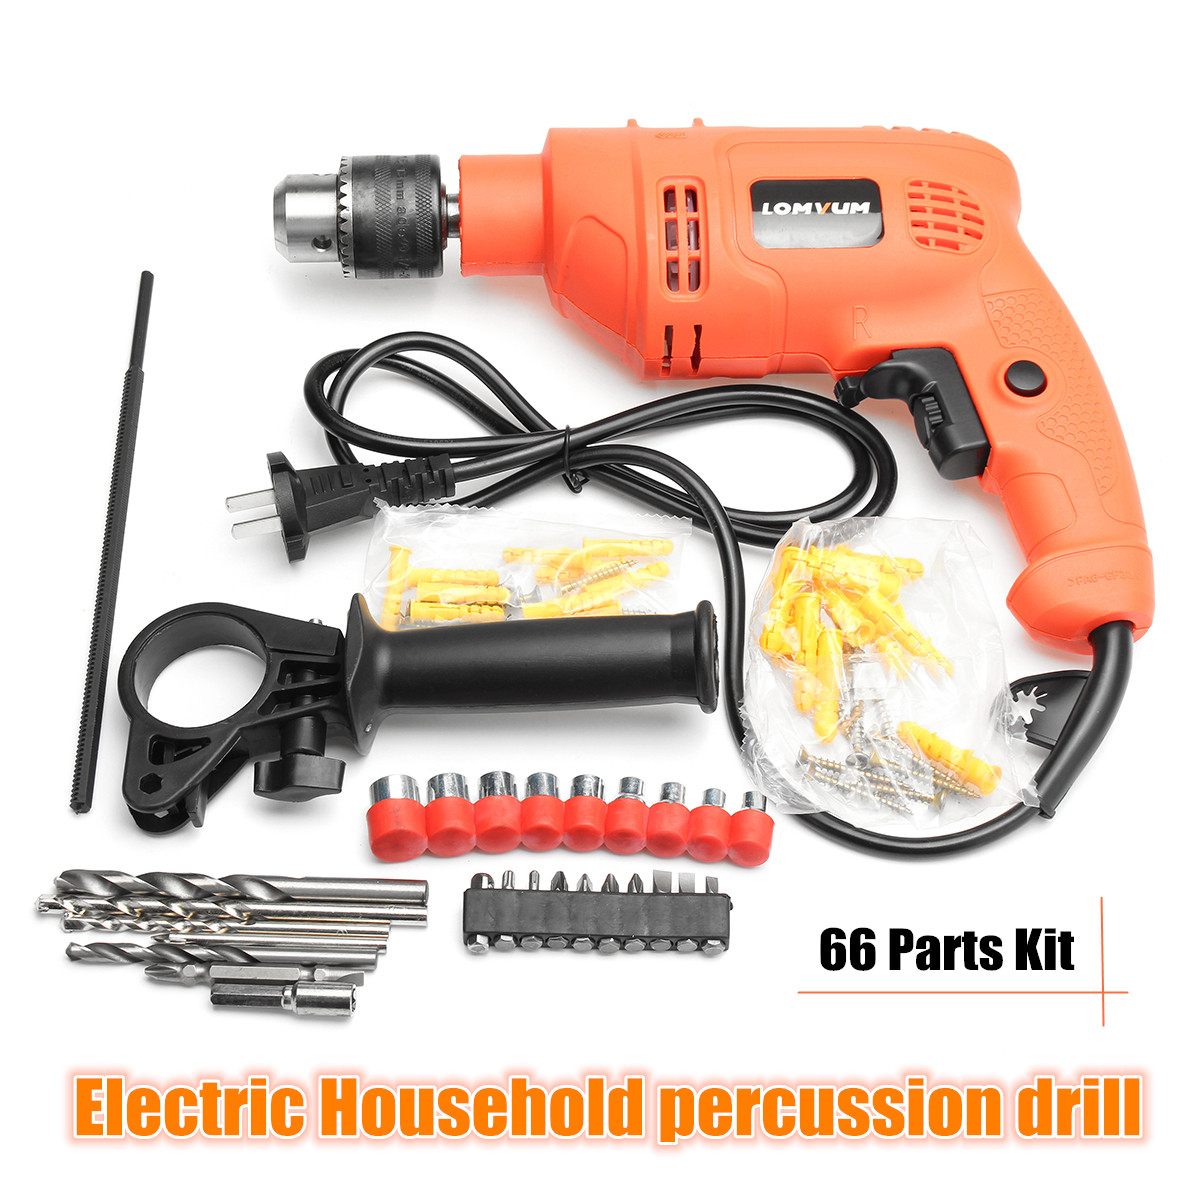 220V 600W Household Percussion Electric Drill Power Drills Impact Drill with 66 Pcs Sleeve multi purpose impact drill for household use la414413 upholstery drilling wall percussion impact drill set power tools 220v